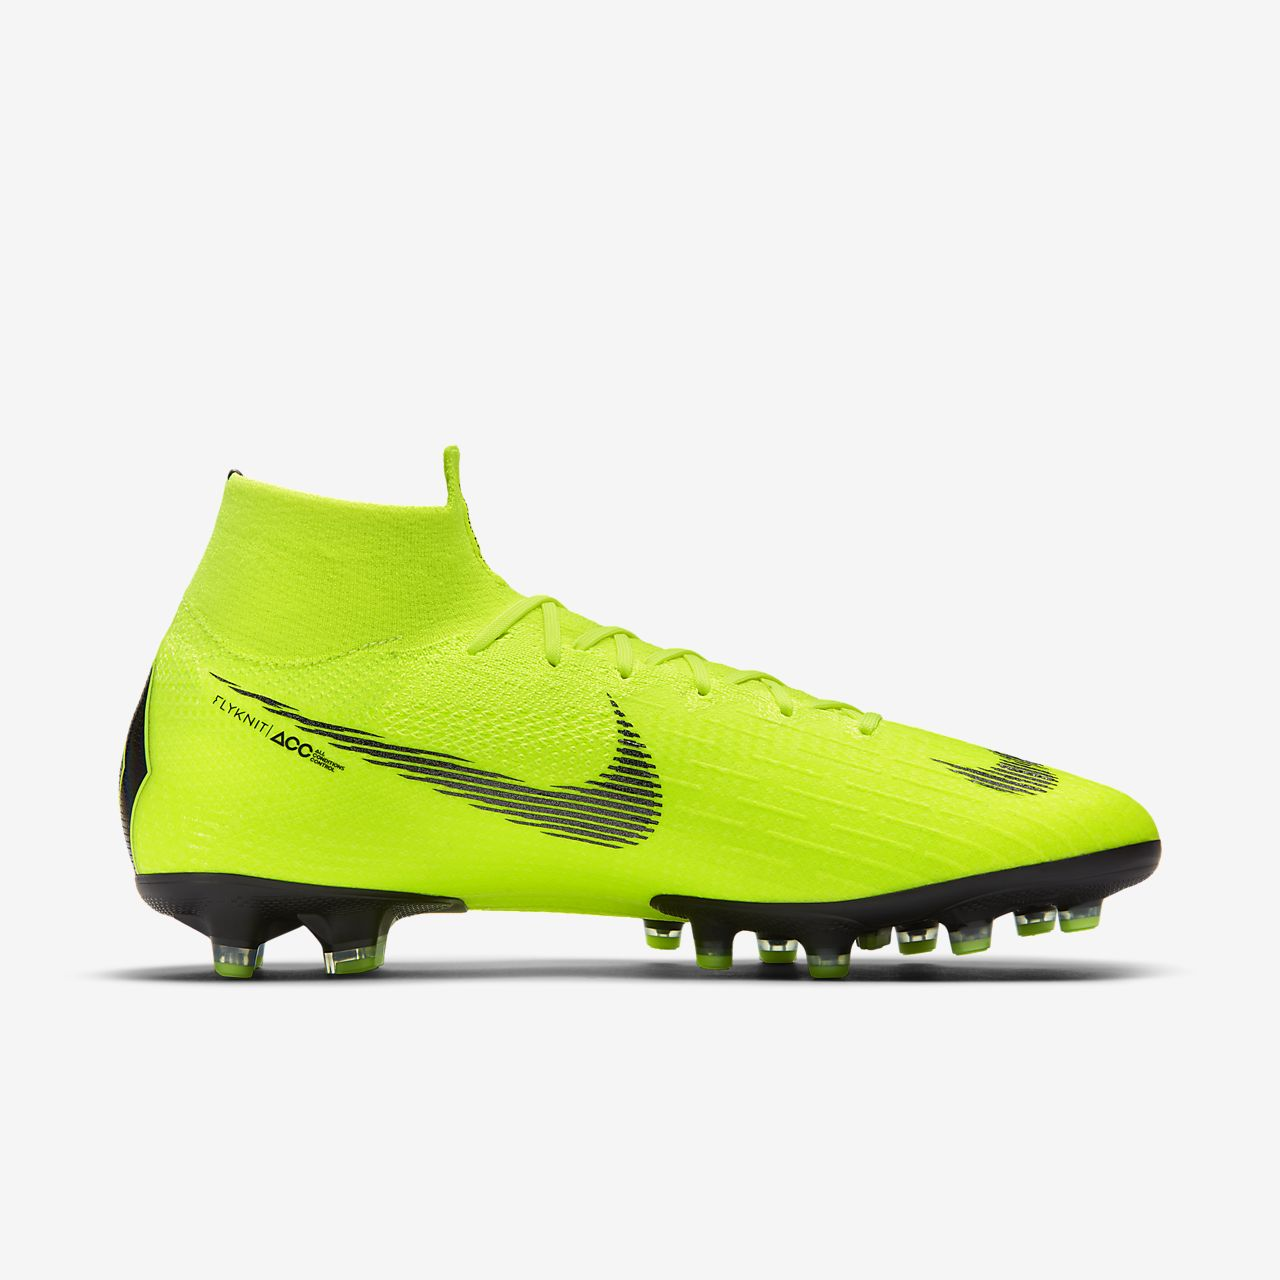 ... Nike Mercurial Superfly 360 Elite AG-PRO Artificial-Grass Football Boot a33ceacd92